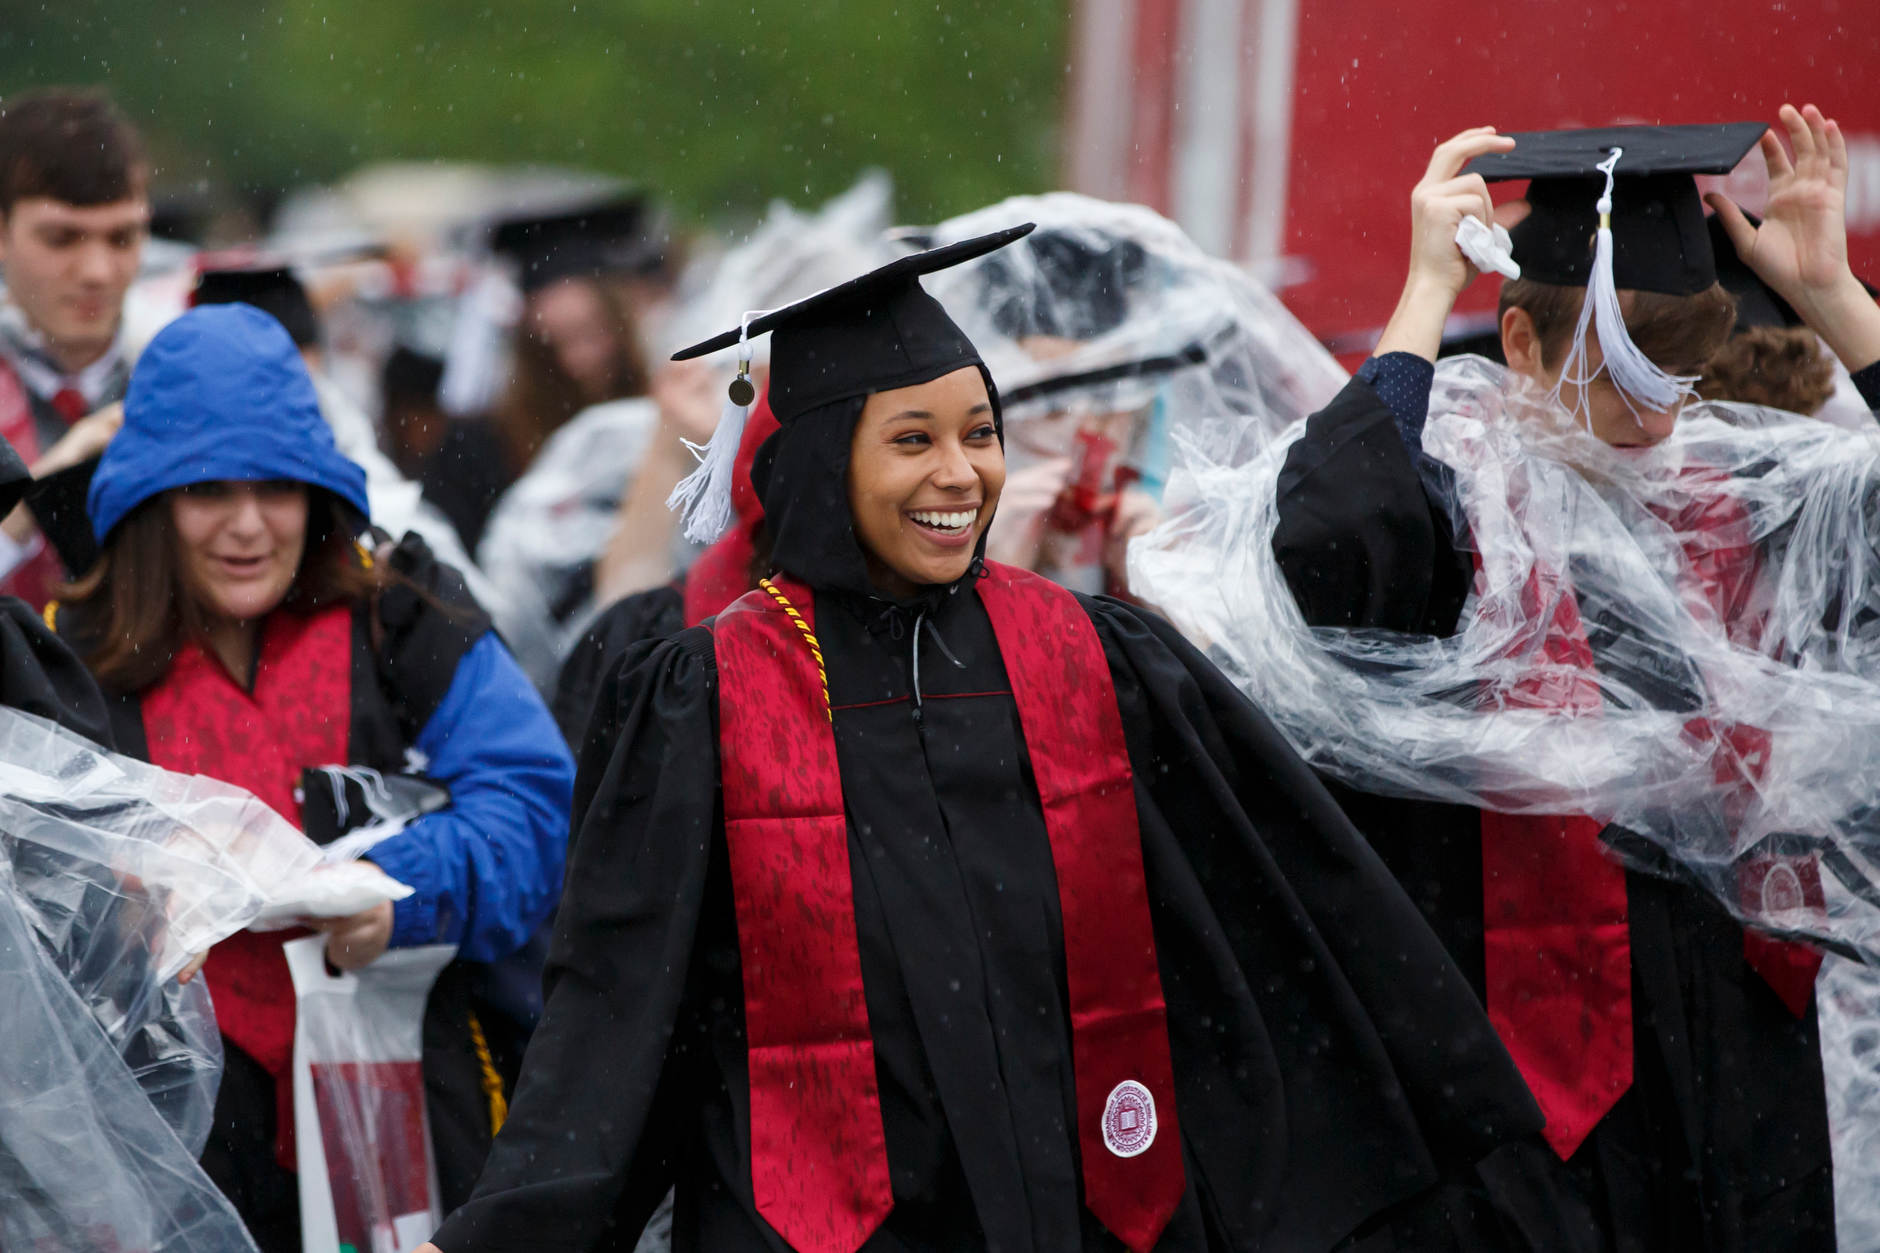 A graduate smiles as she walks through the rain during the processional for the IU Bloomington Undergraduate Commencement from Mellencamp Pavilion to Memorial Stadium on Saturday, May 4, 2019. (James Brosher/Indiana University)